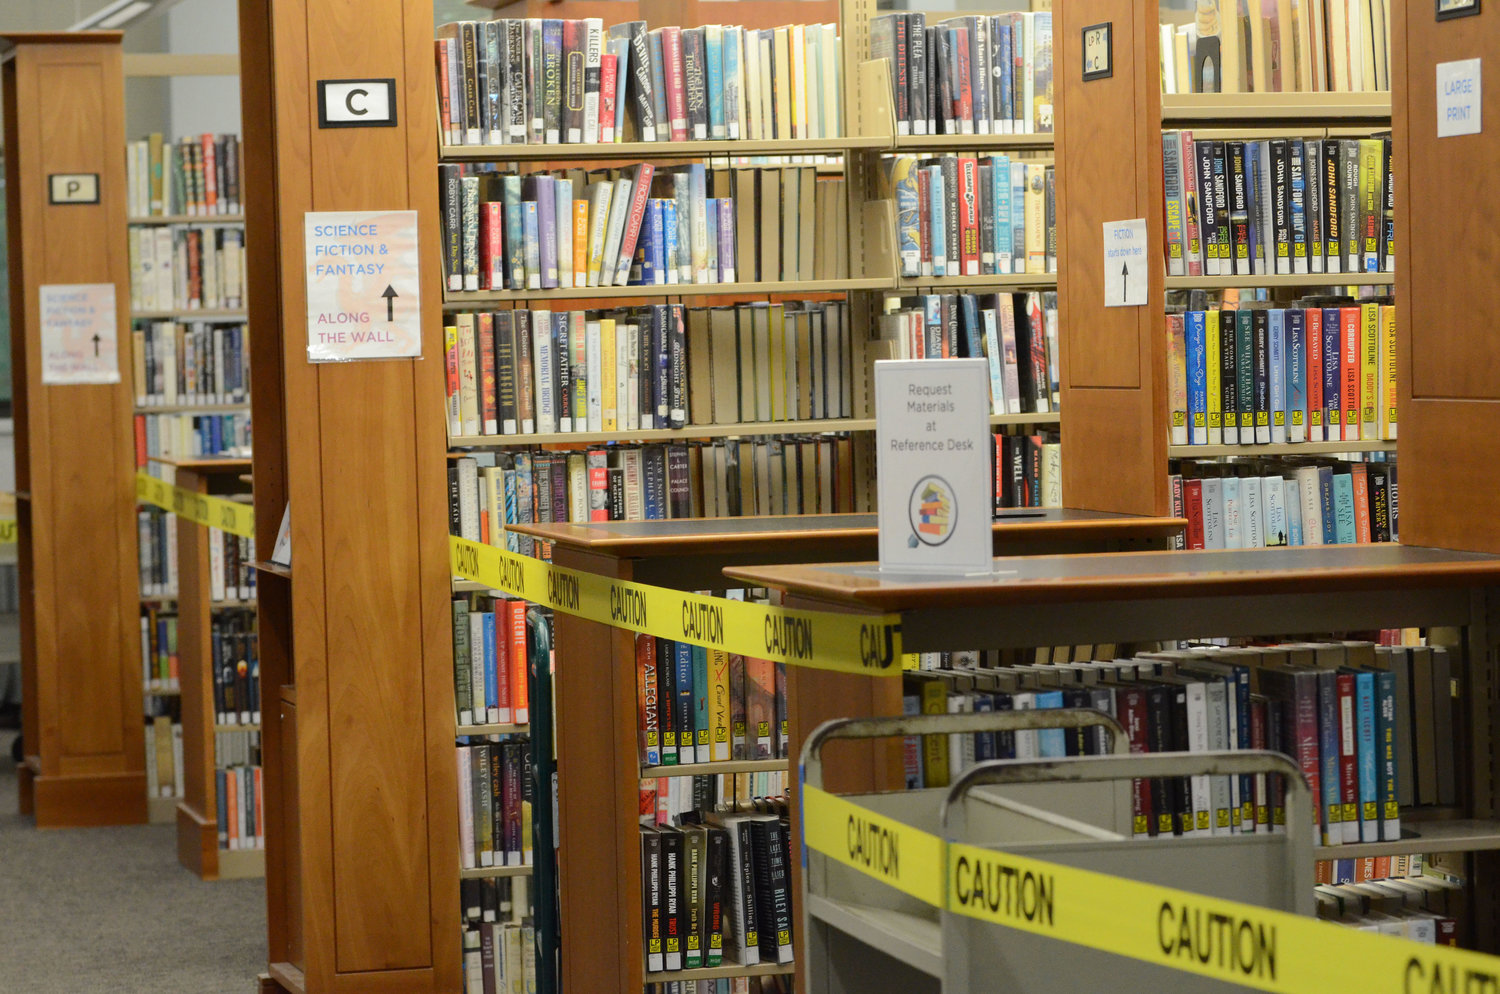 Officials are proposing a $74,000 reduction to the Barrington Public Library budget.